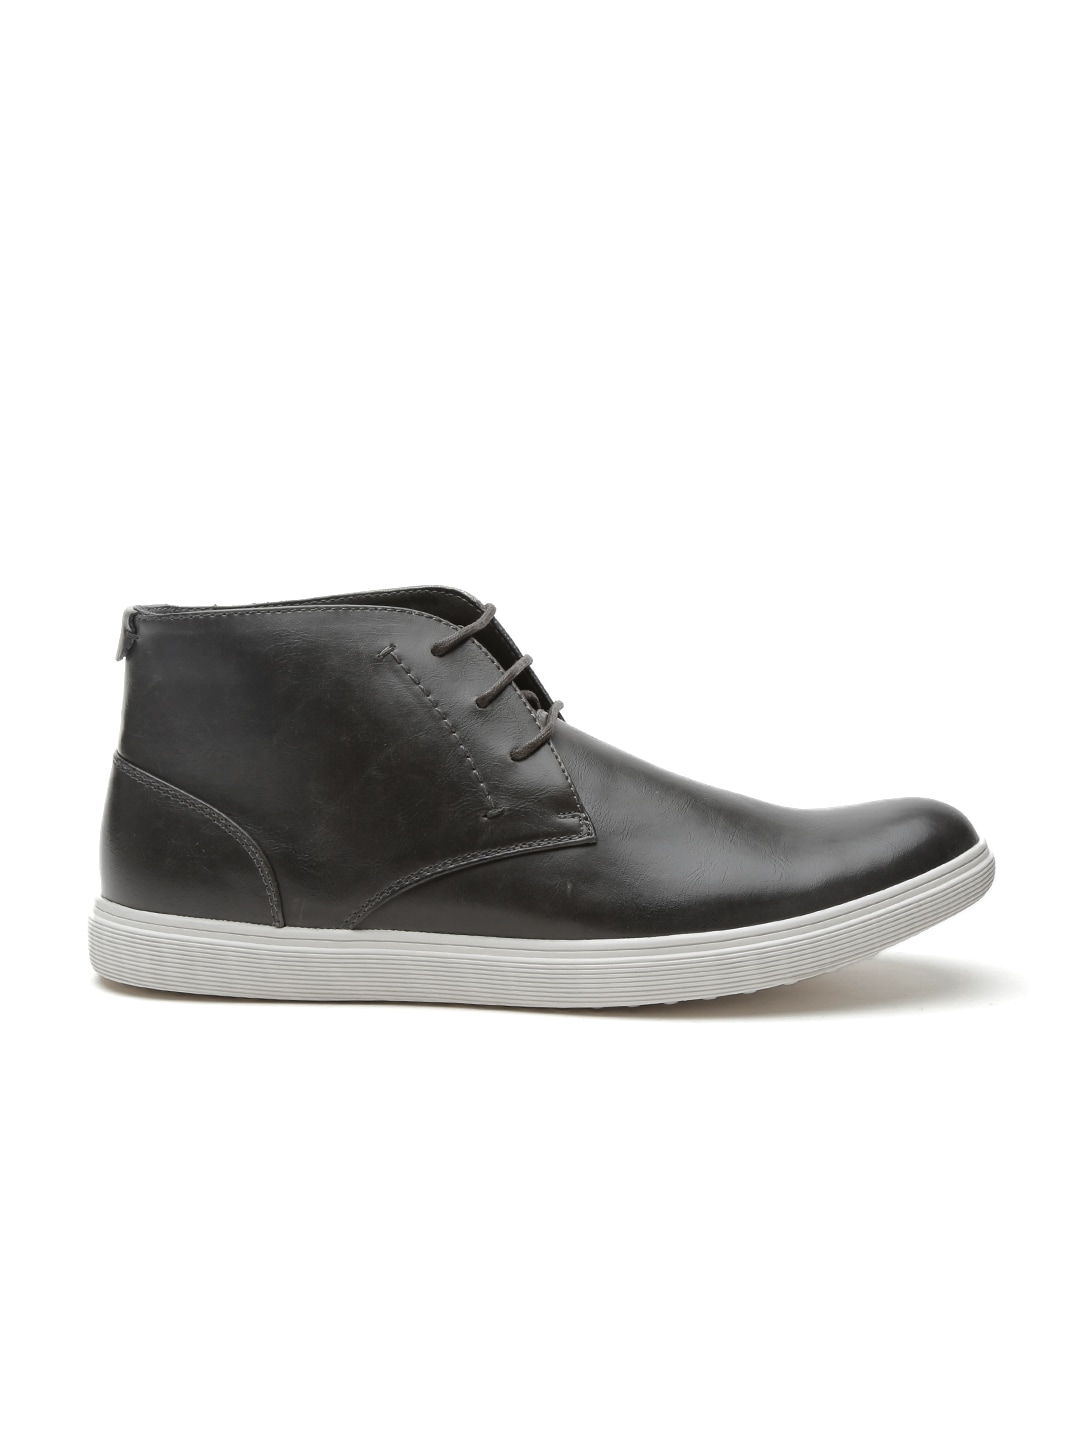 9d39dbe4073 Steve Madden Men Casual Shoes - Buy Steve Madden Men Casual Shoes online in  India